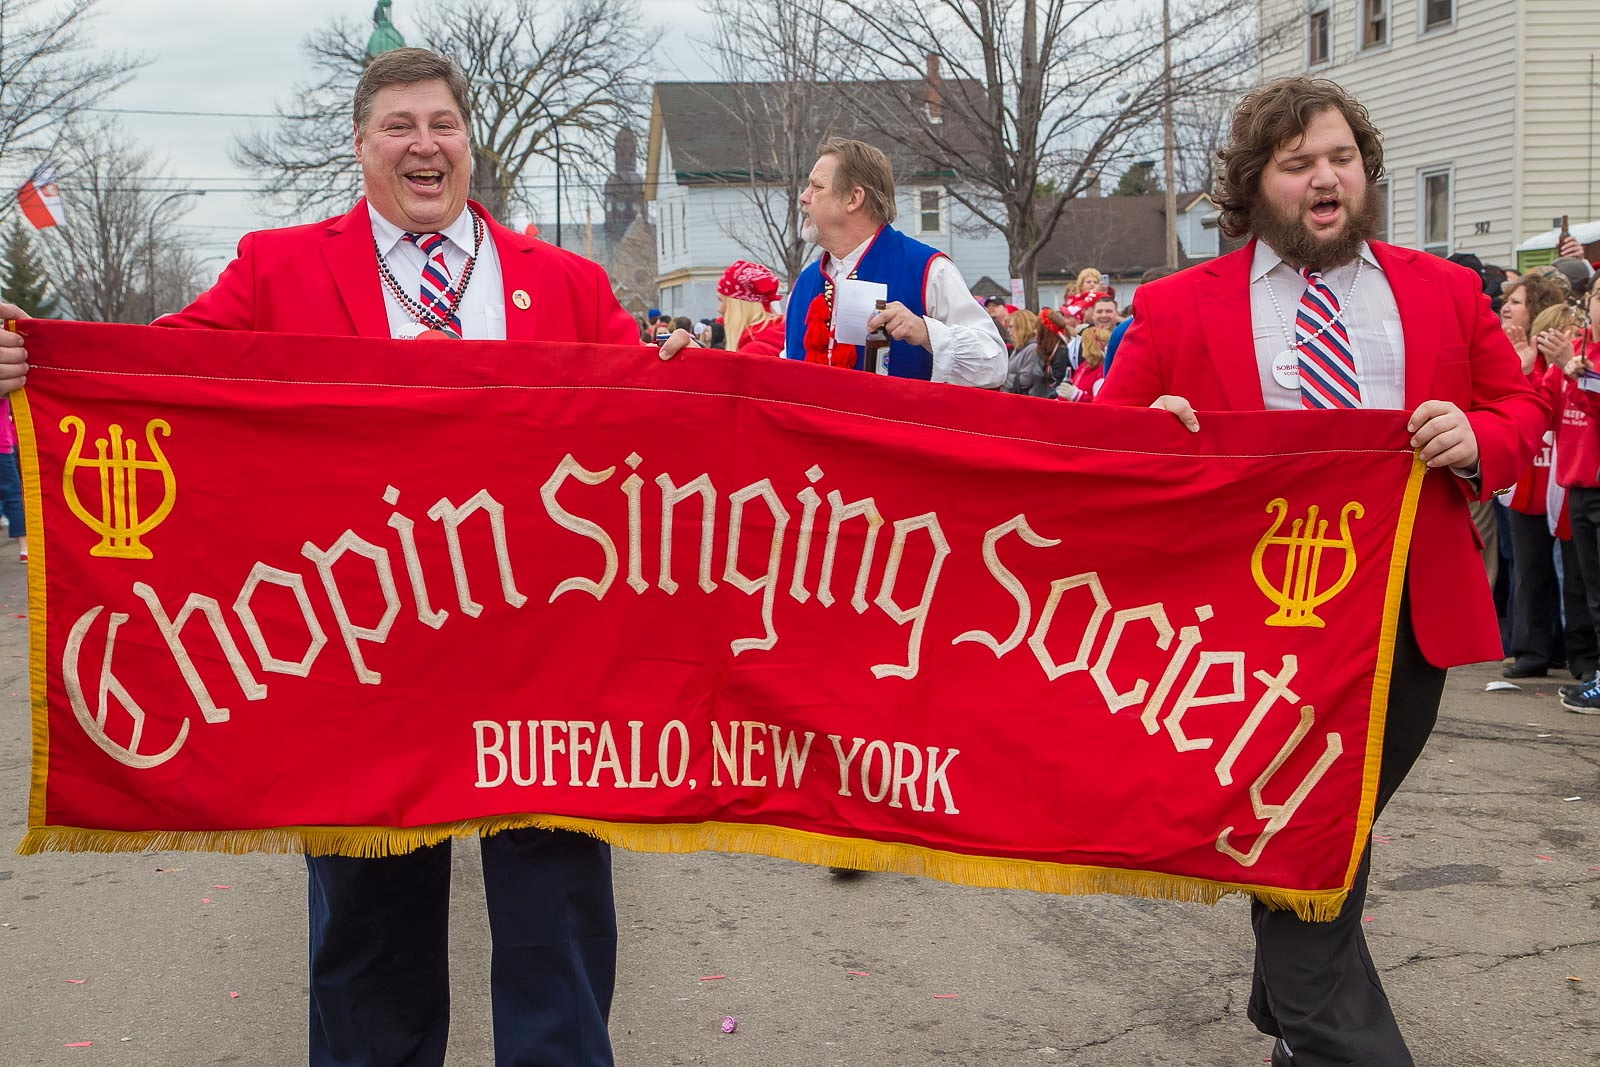 Chopin Singing Society in the Dyngus Day Parade, 2015. (Don Nieman/Special to The News)